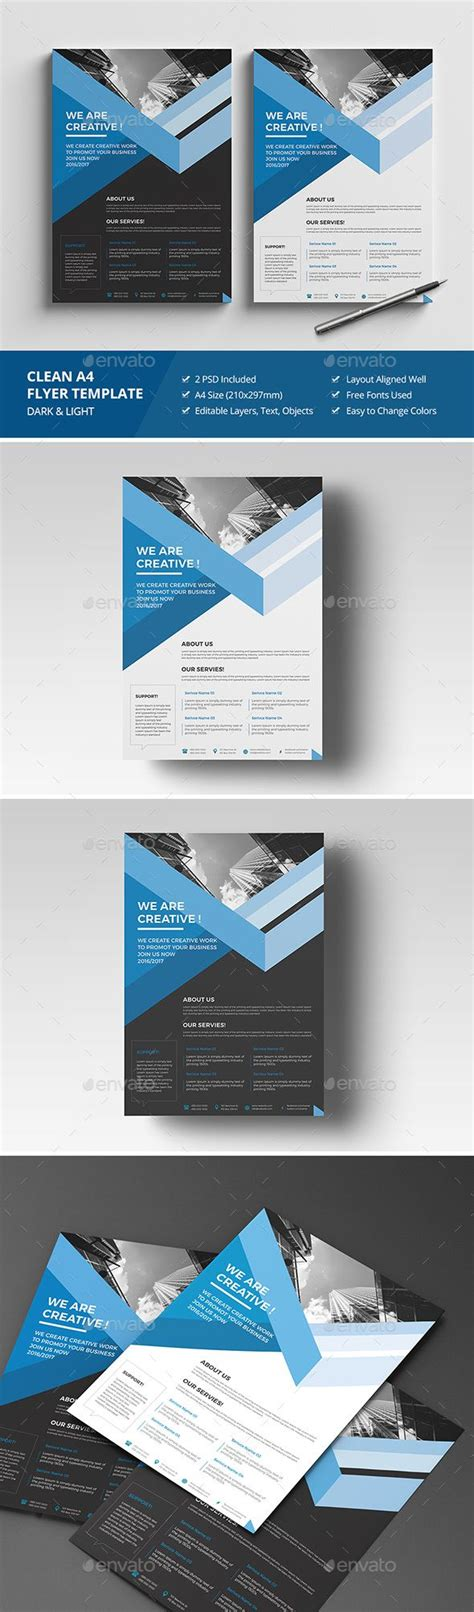 design templates for brochures photoshop 1000 images about leaflets on pinterest flyers cars